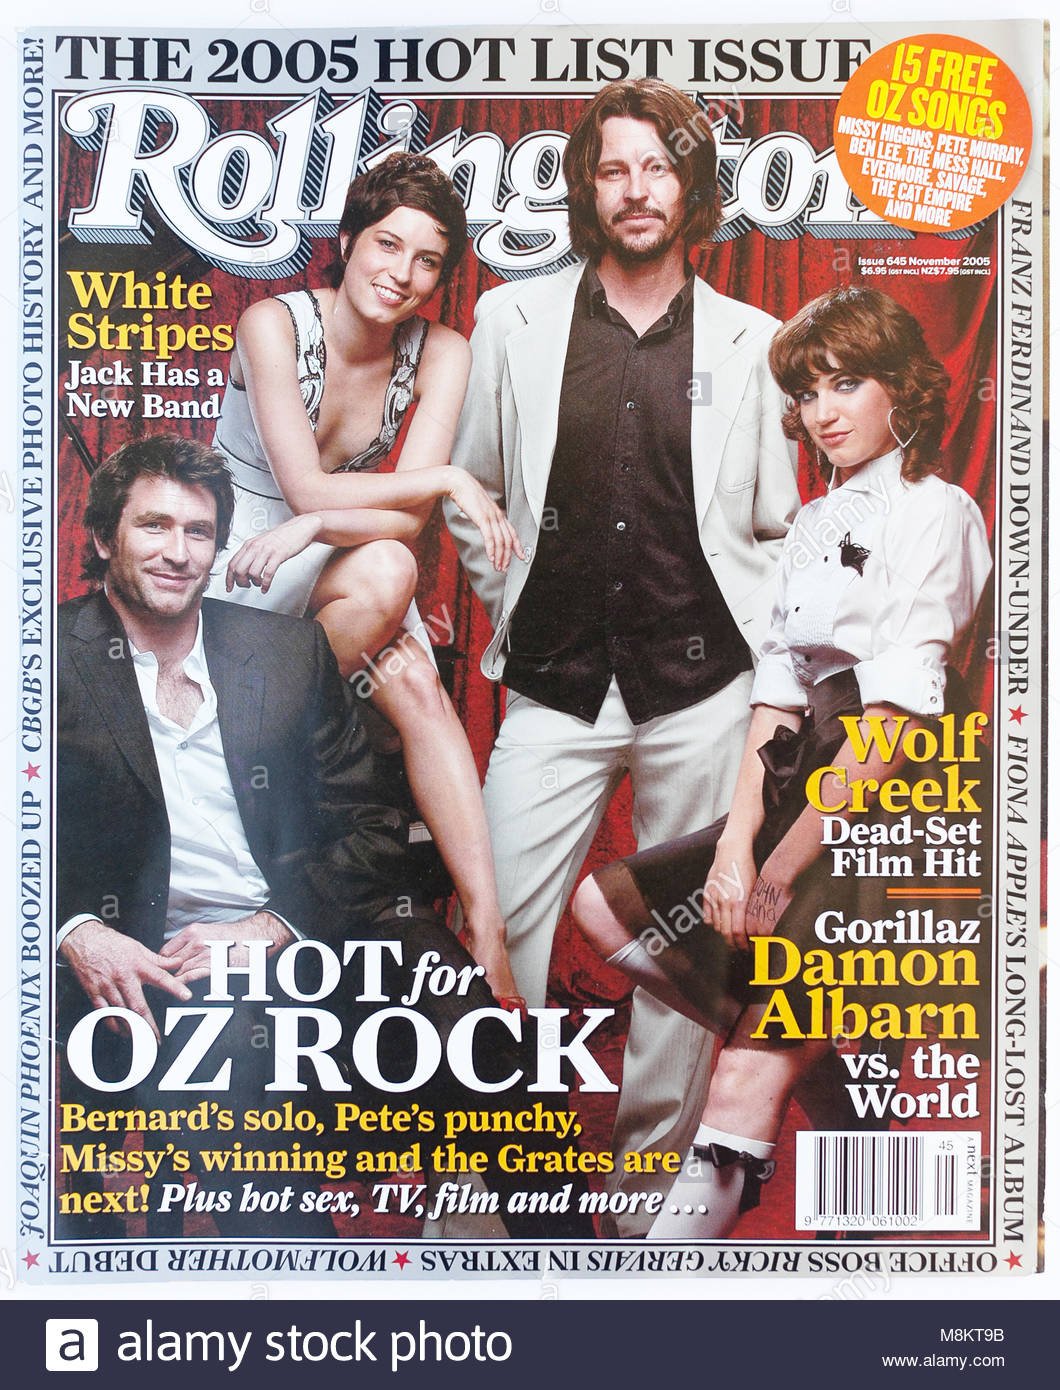 The cover of Rolling Stone magazine, issue 645, Hot for Oz Rock Stock Photo